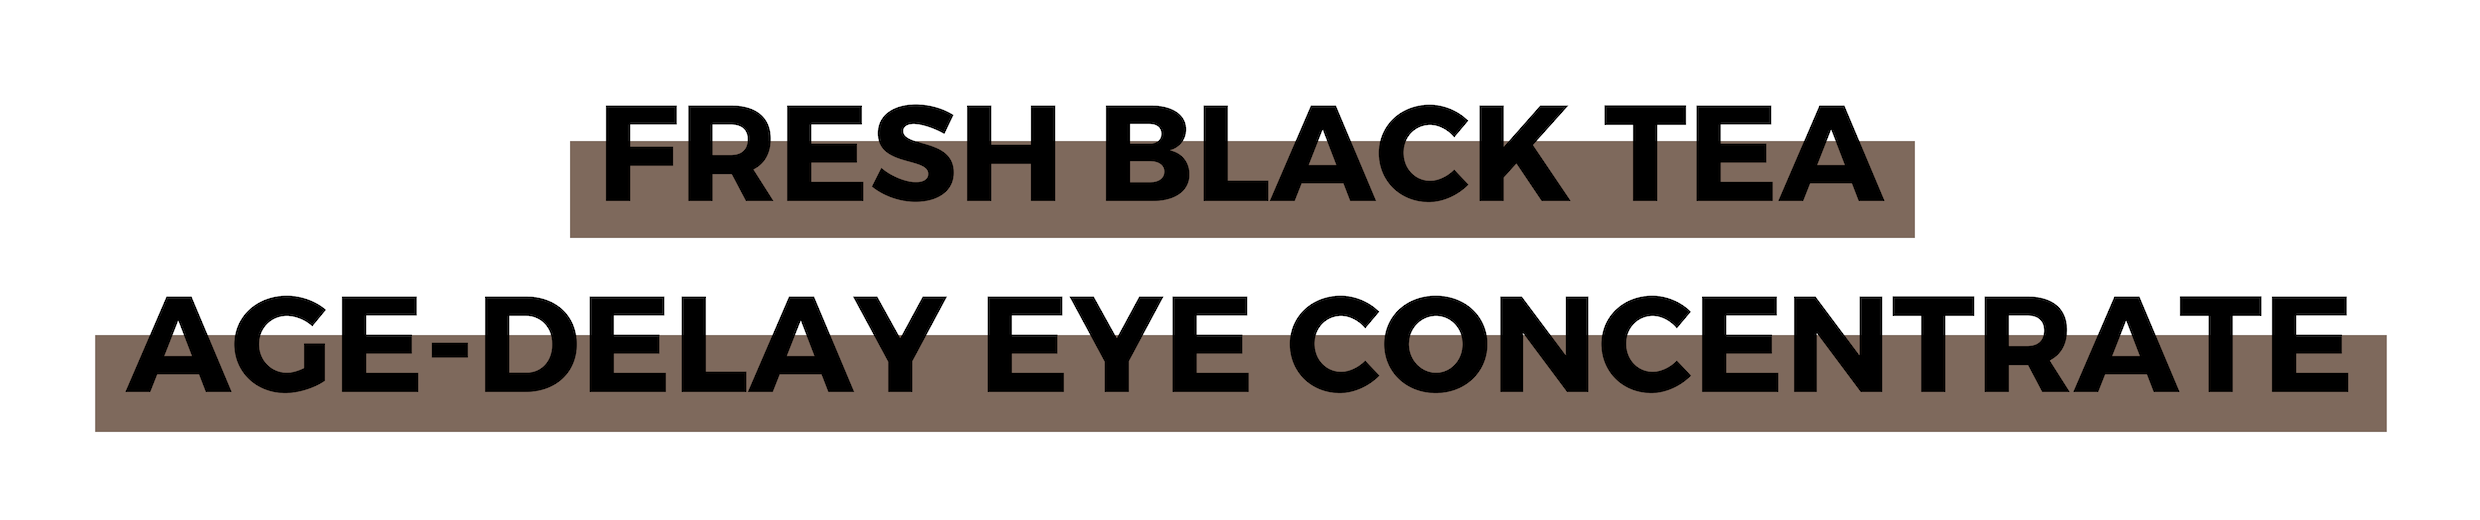 FRESH BLACK TEA AGE-DELAY EYE CONCENTRATE.png